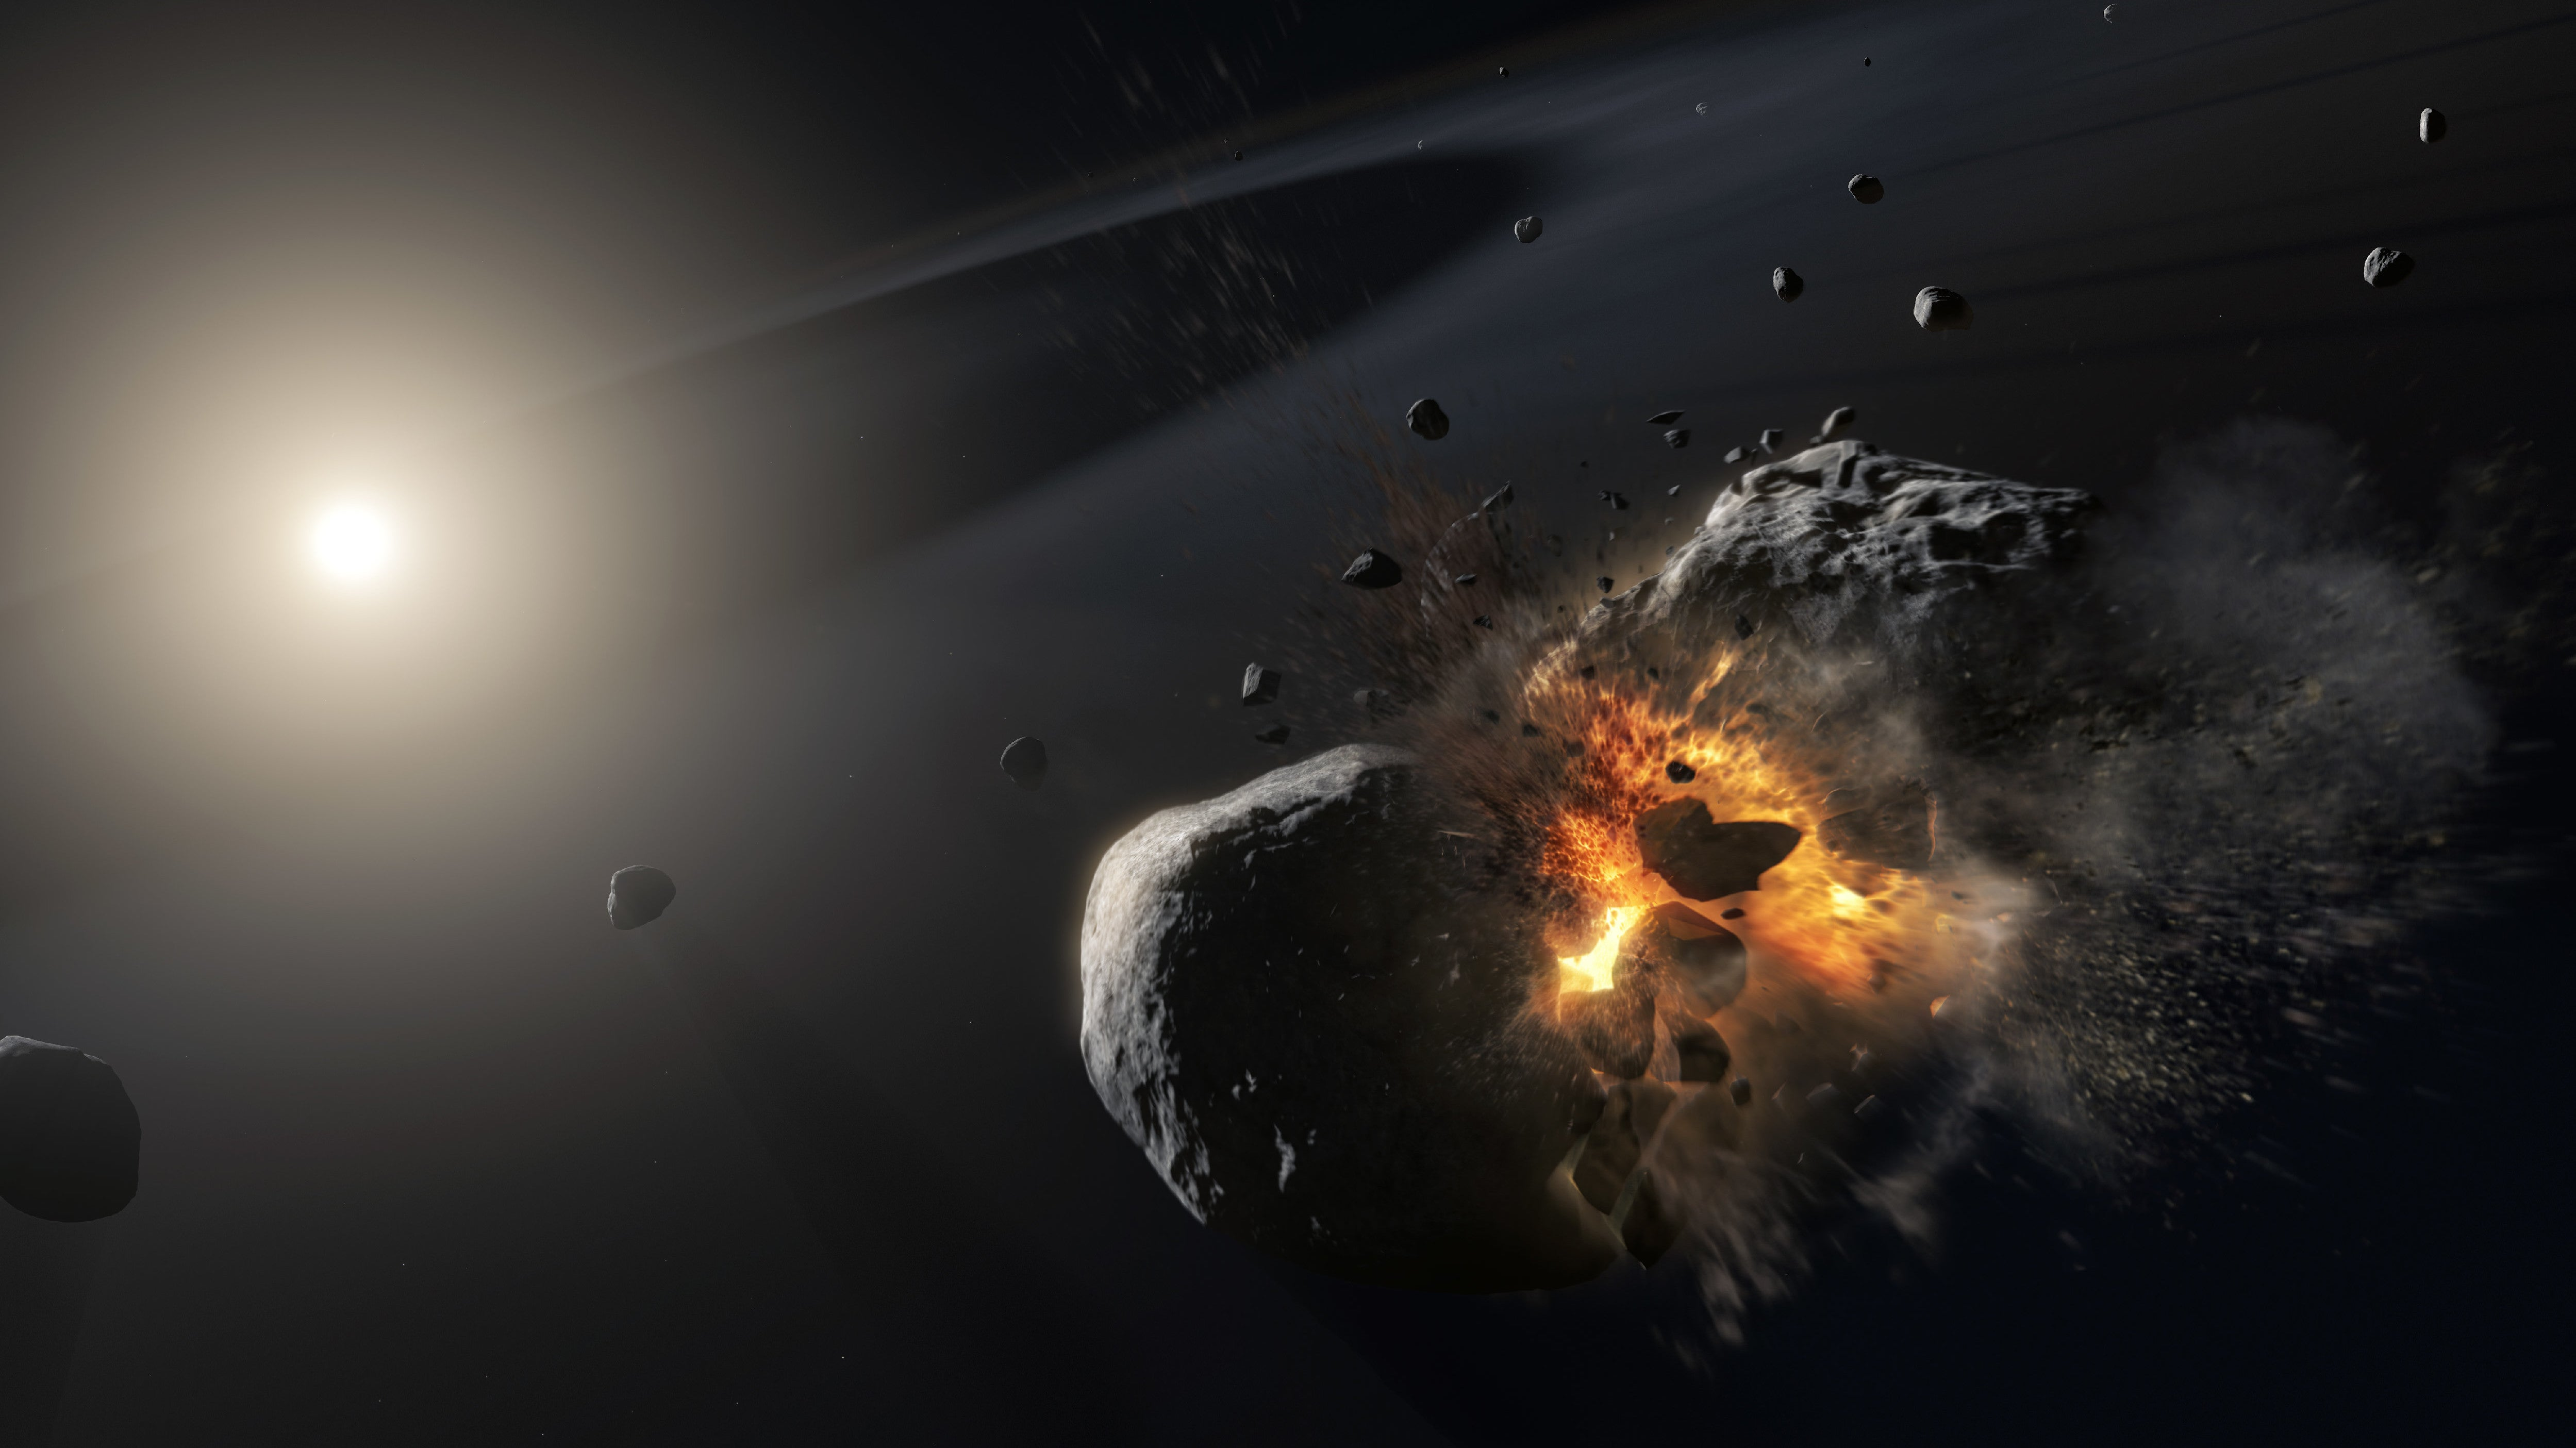 Vanishing Exoplanet Might Actually Be The Aftermath Of A 'Supercatastrophic' Collision